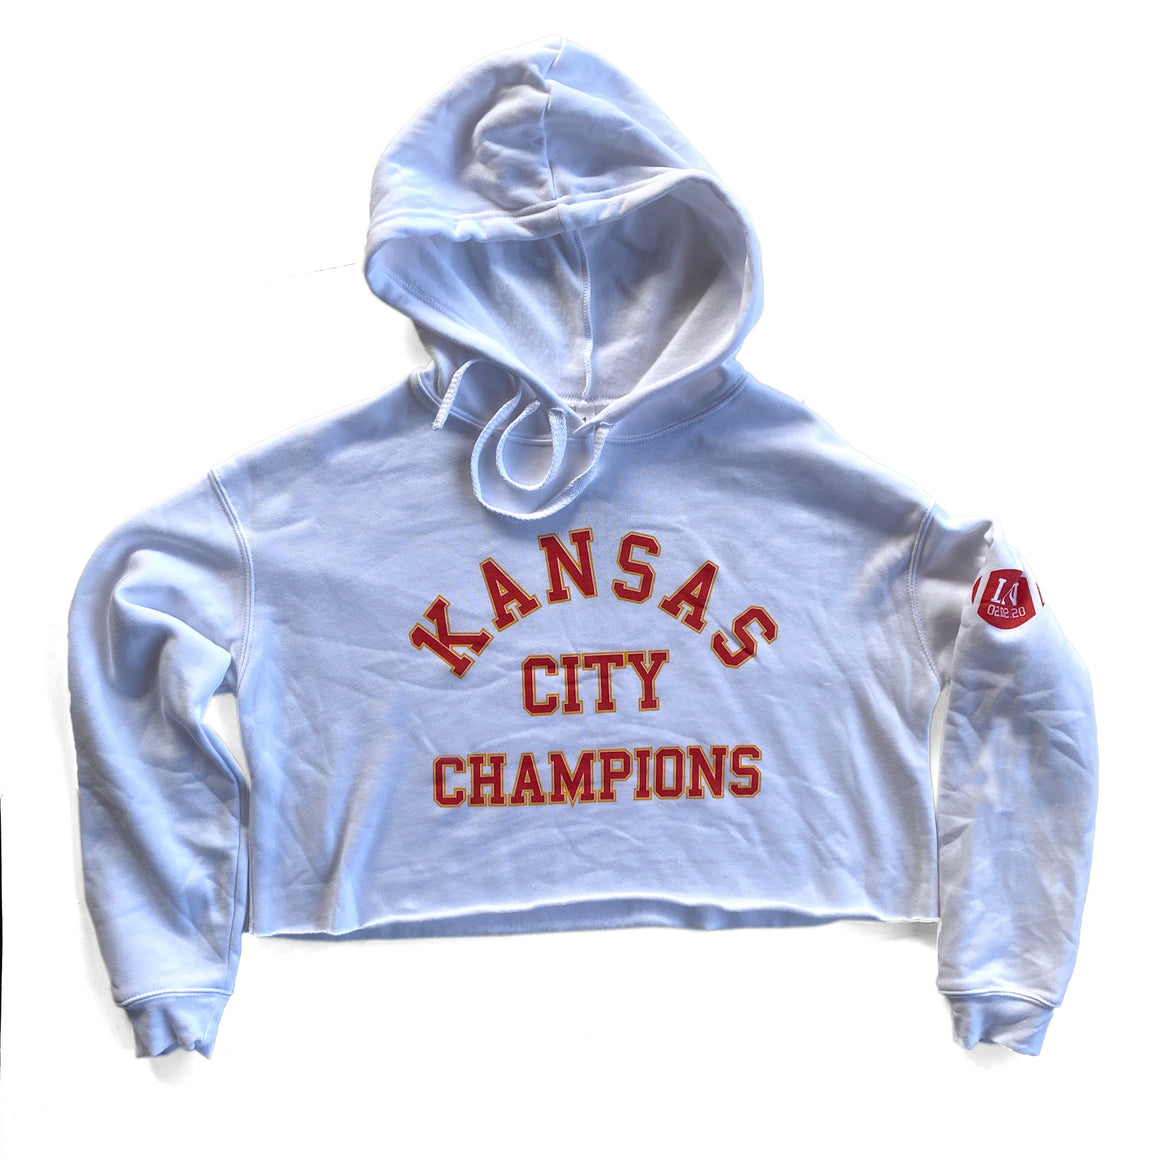 1KC | KANSAS CITY CHAMPIONS CROP HOODIE - WHITE